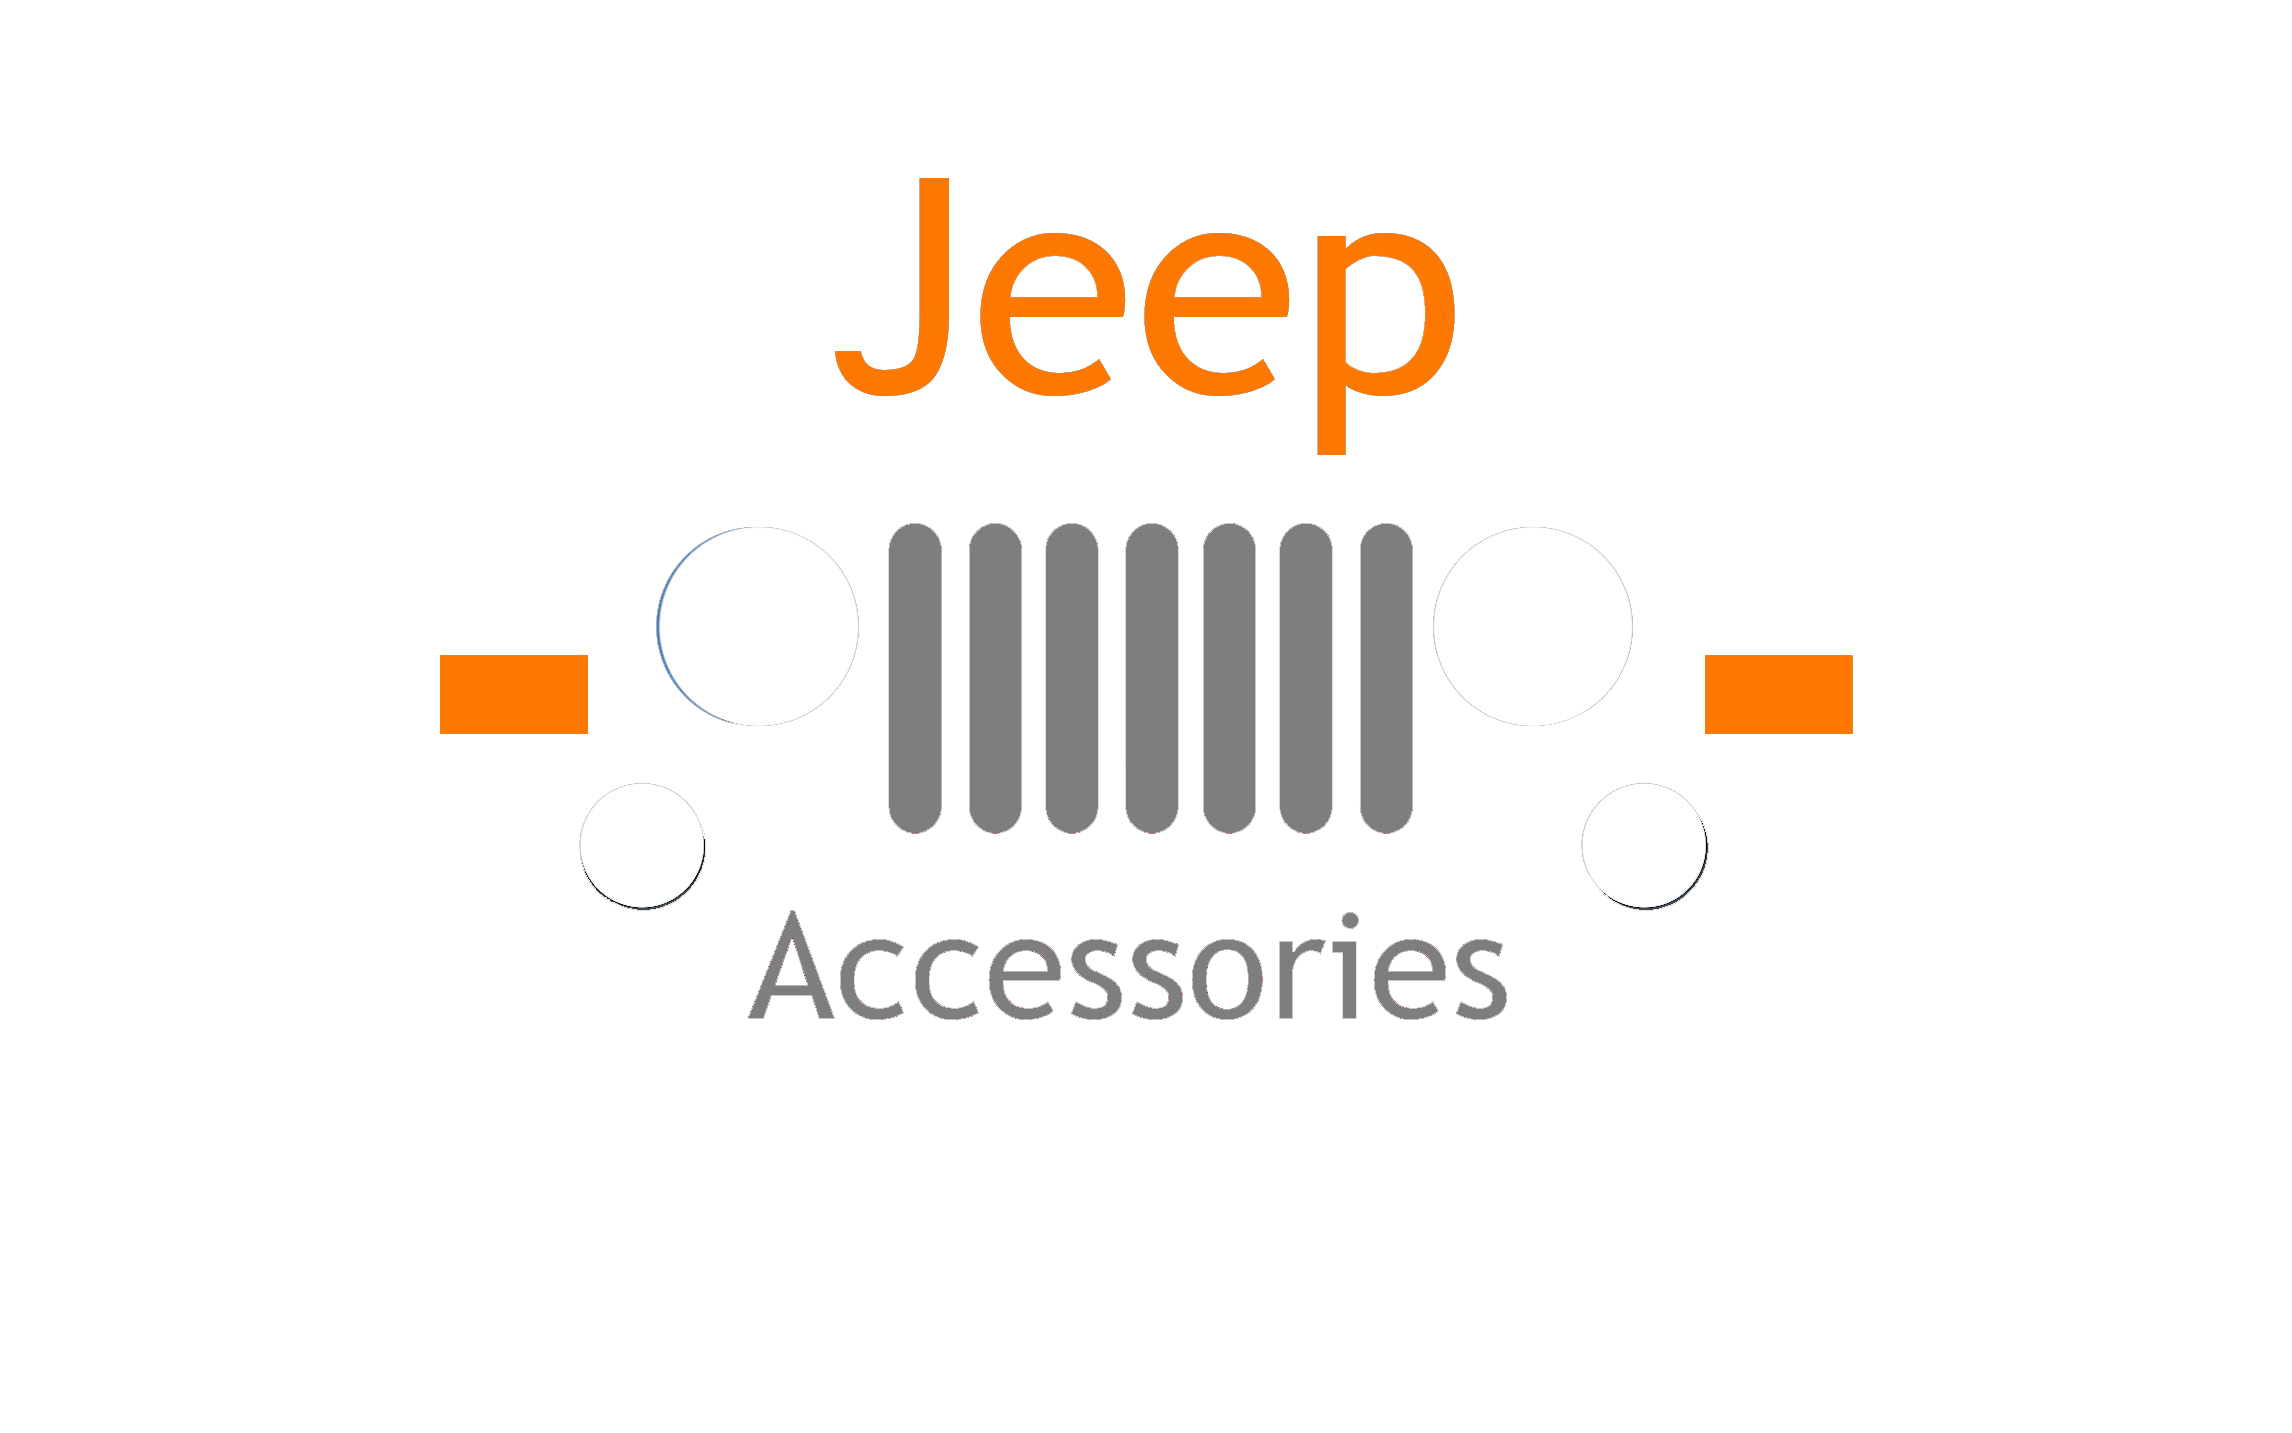 Jeep text png. Accessories home interior